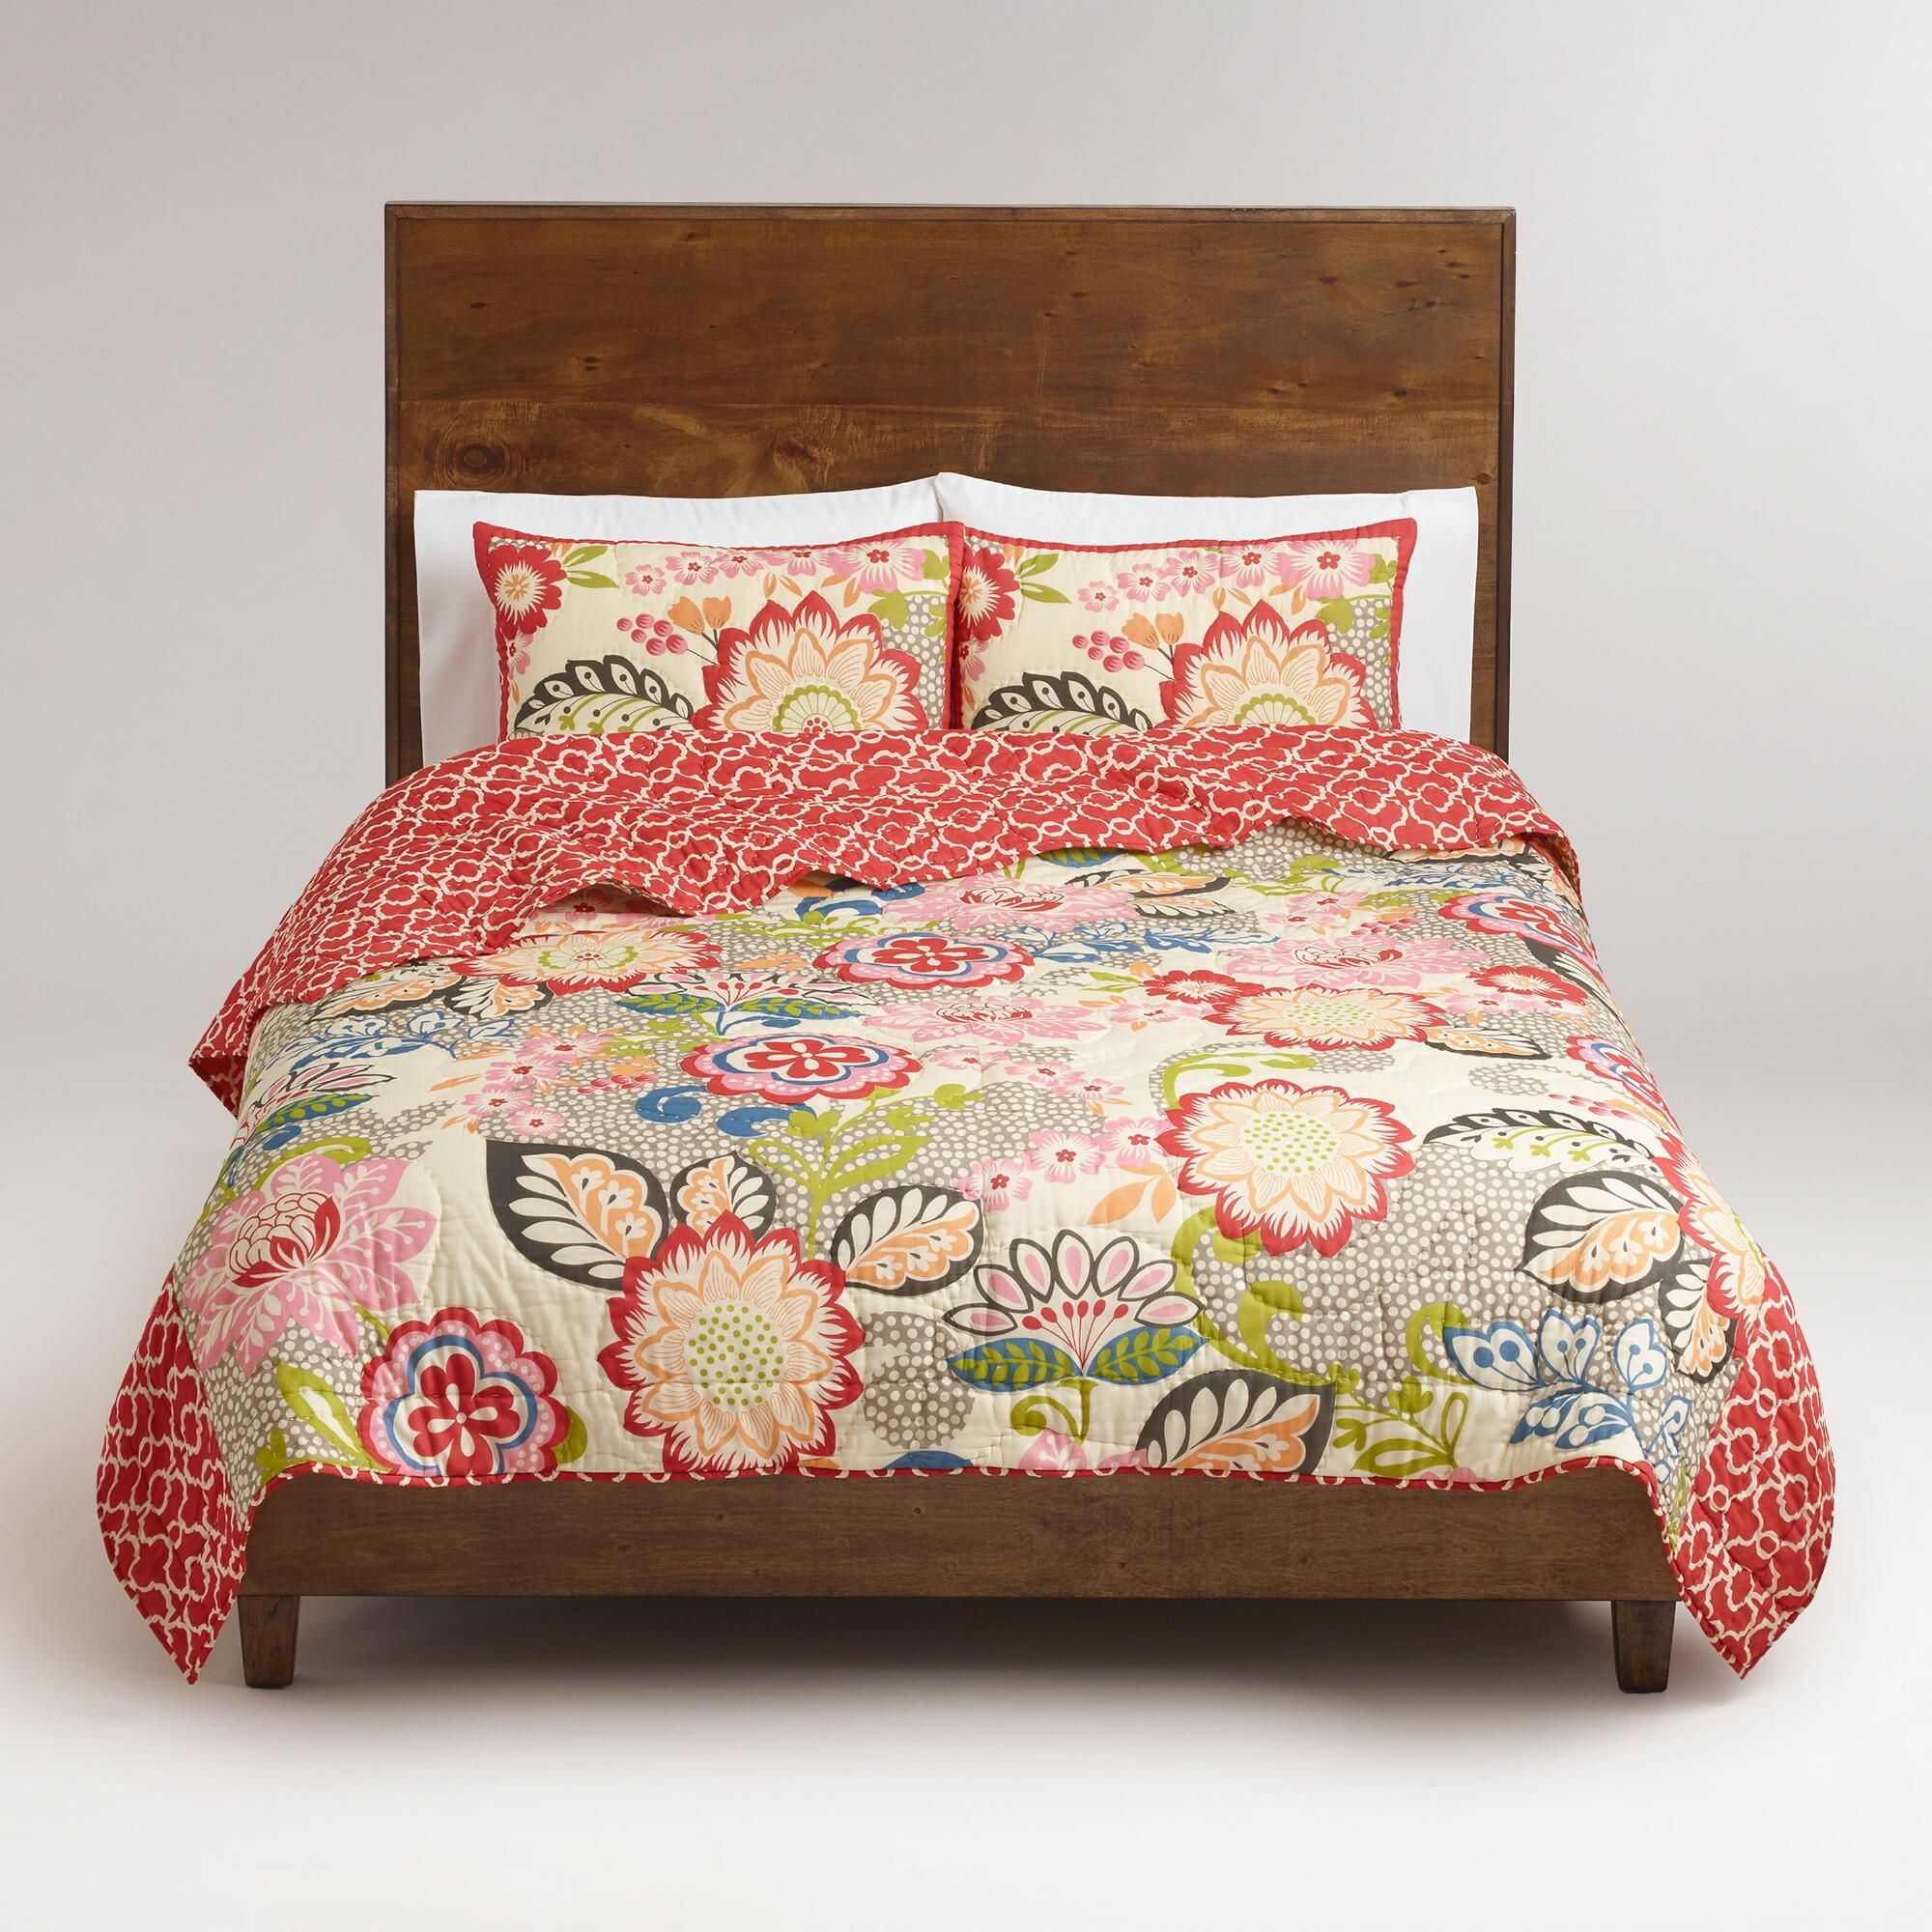 floral and geometric darby bedding collection world market